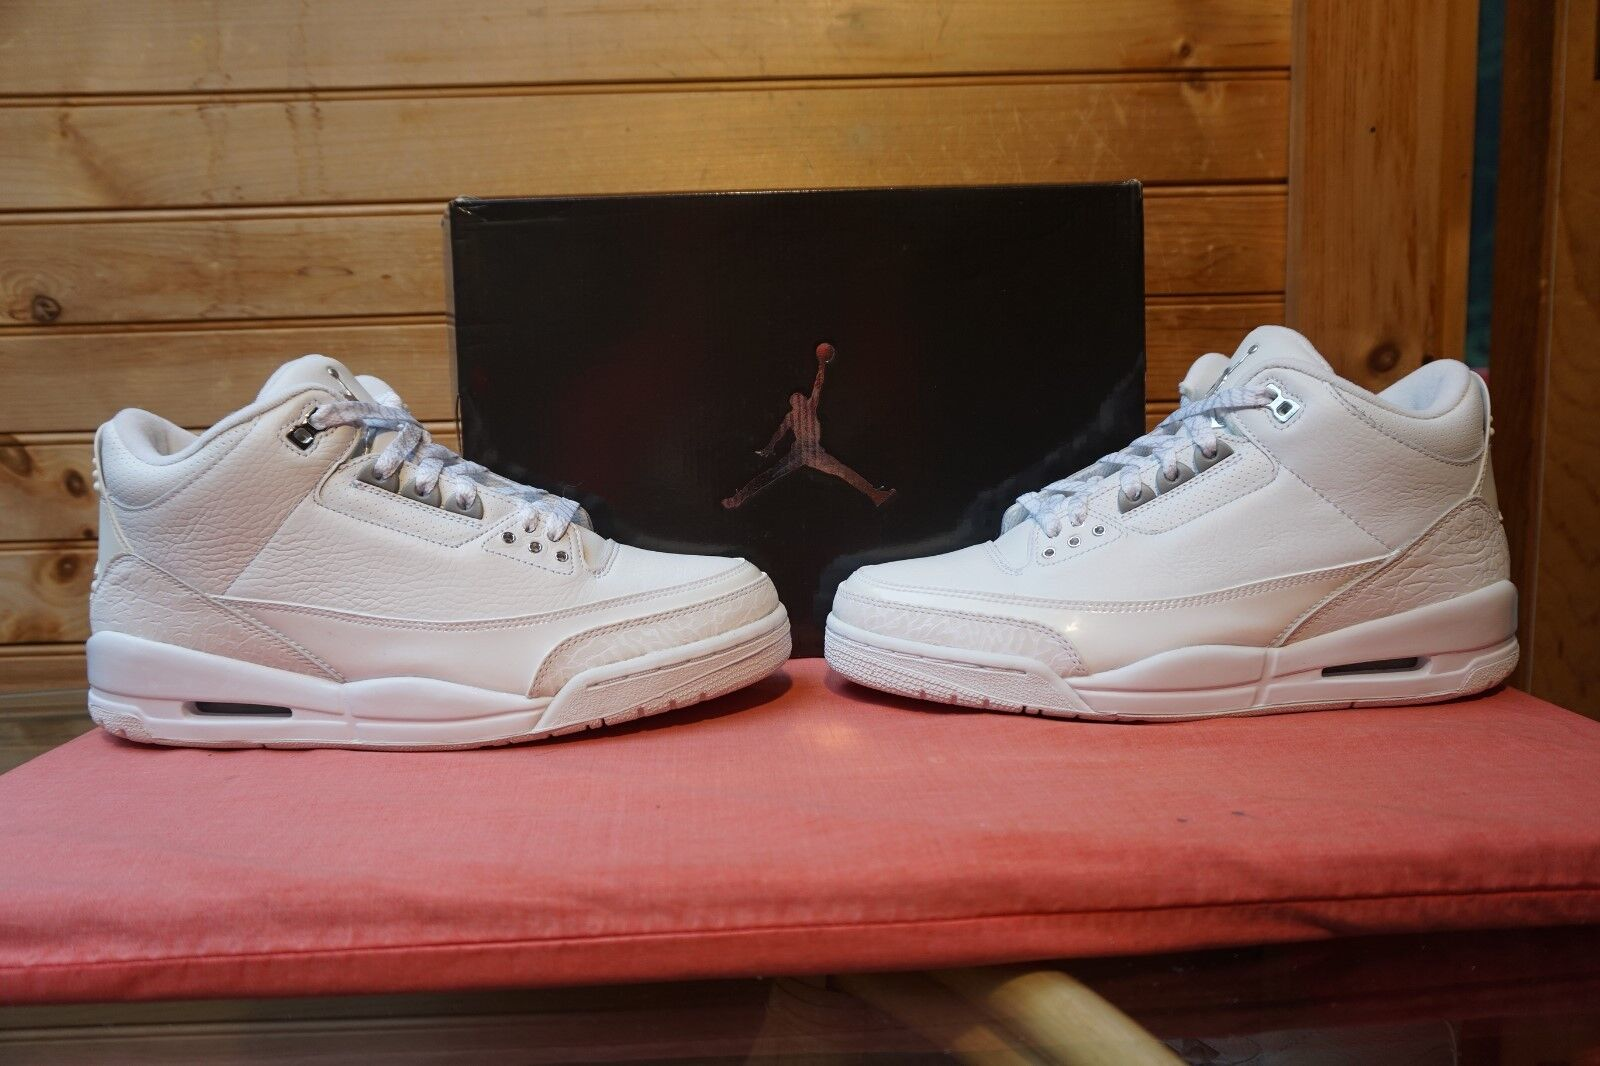 2007 Nike Air Jordan 3 Retro Pure Money White Met Silver Sz 10 (4871) 136064-103